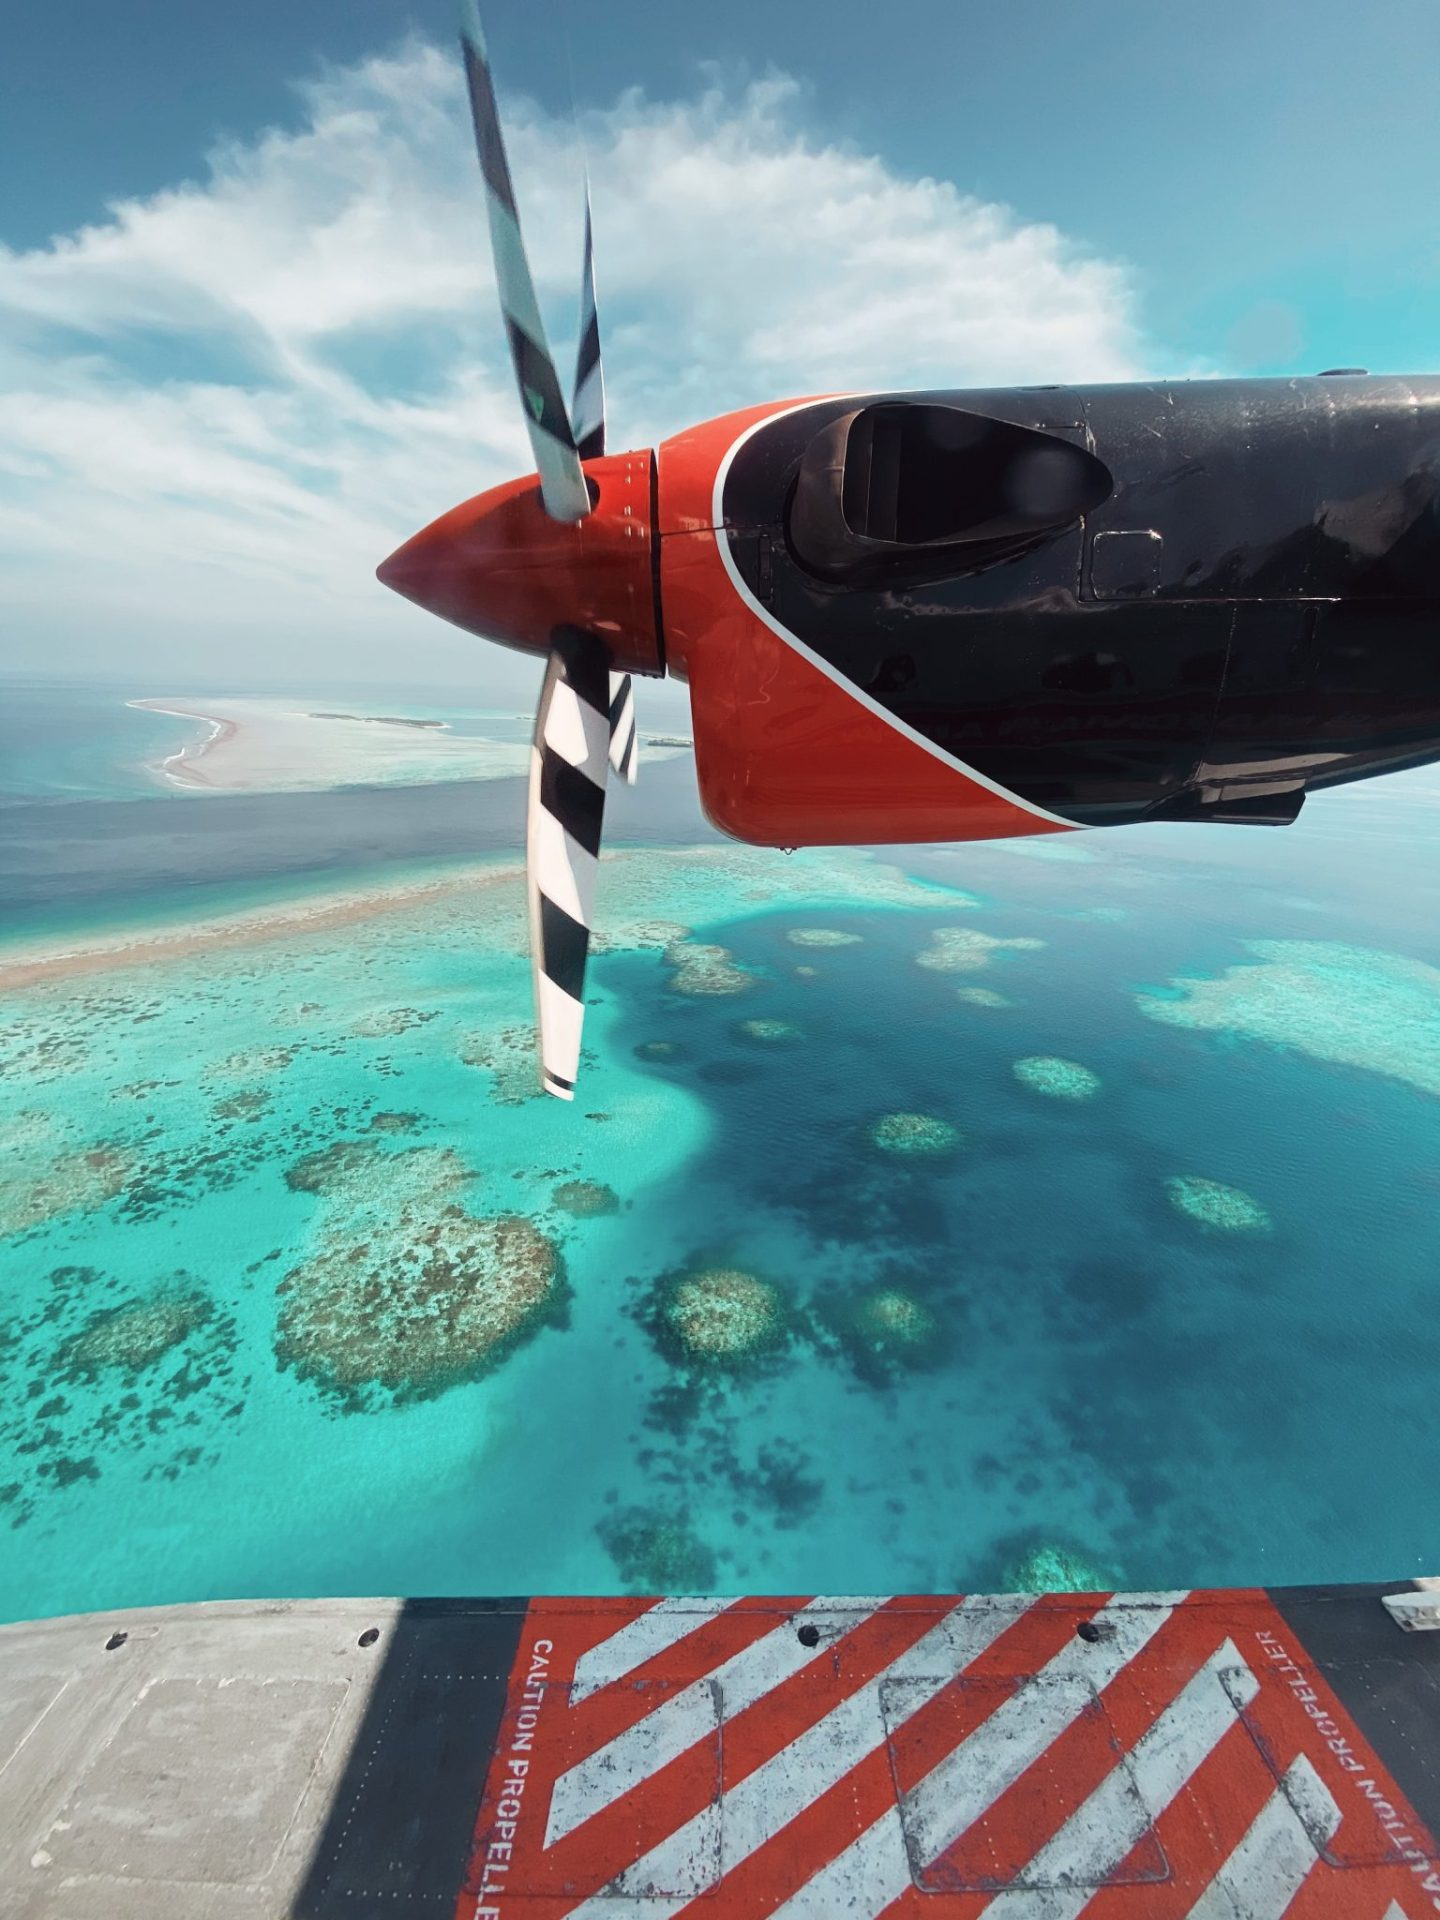 Window view from Maldives sea plane with turquoise blue water below